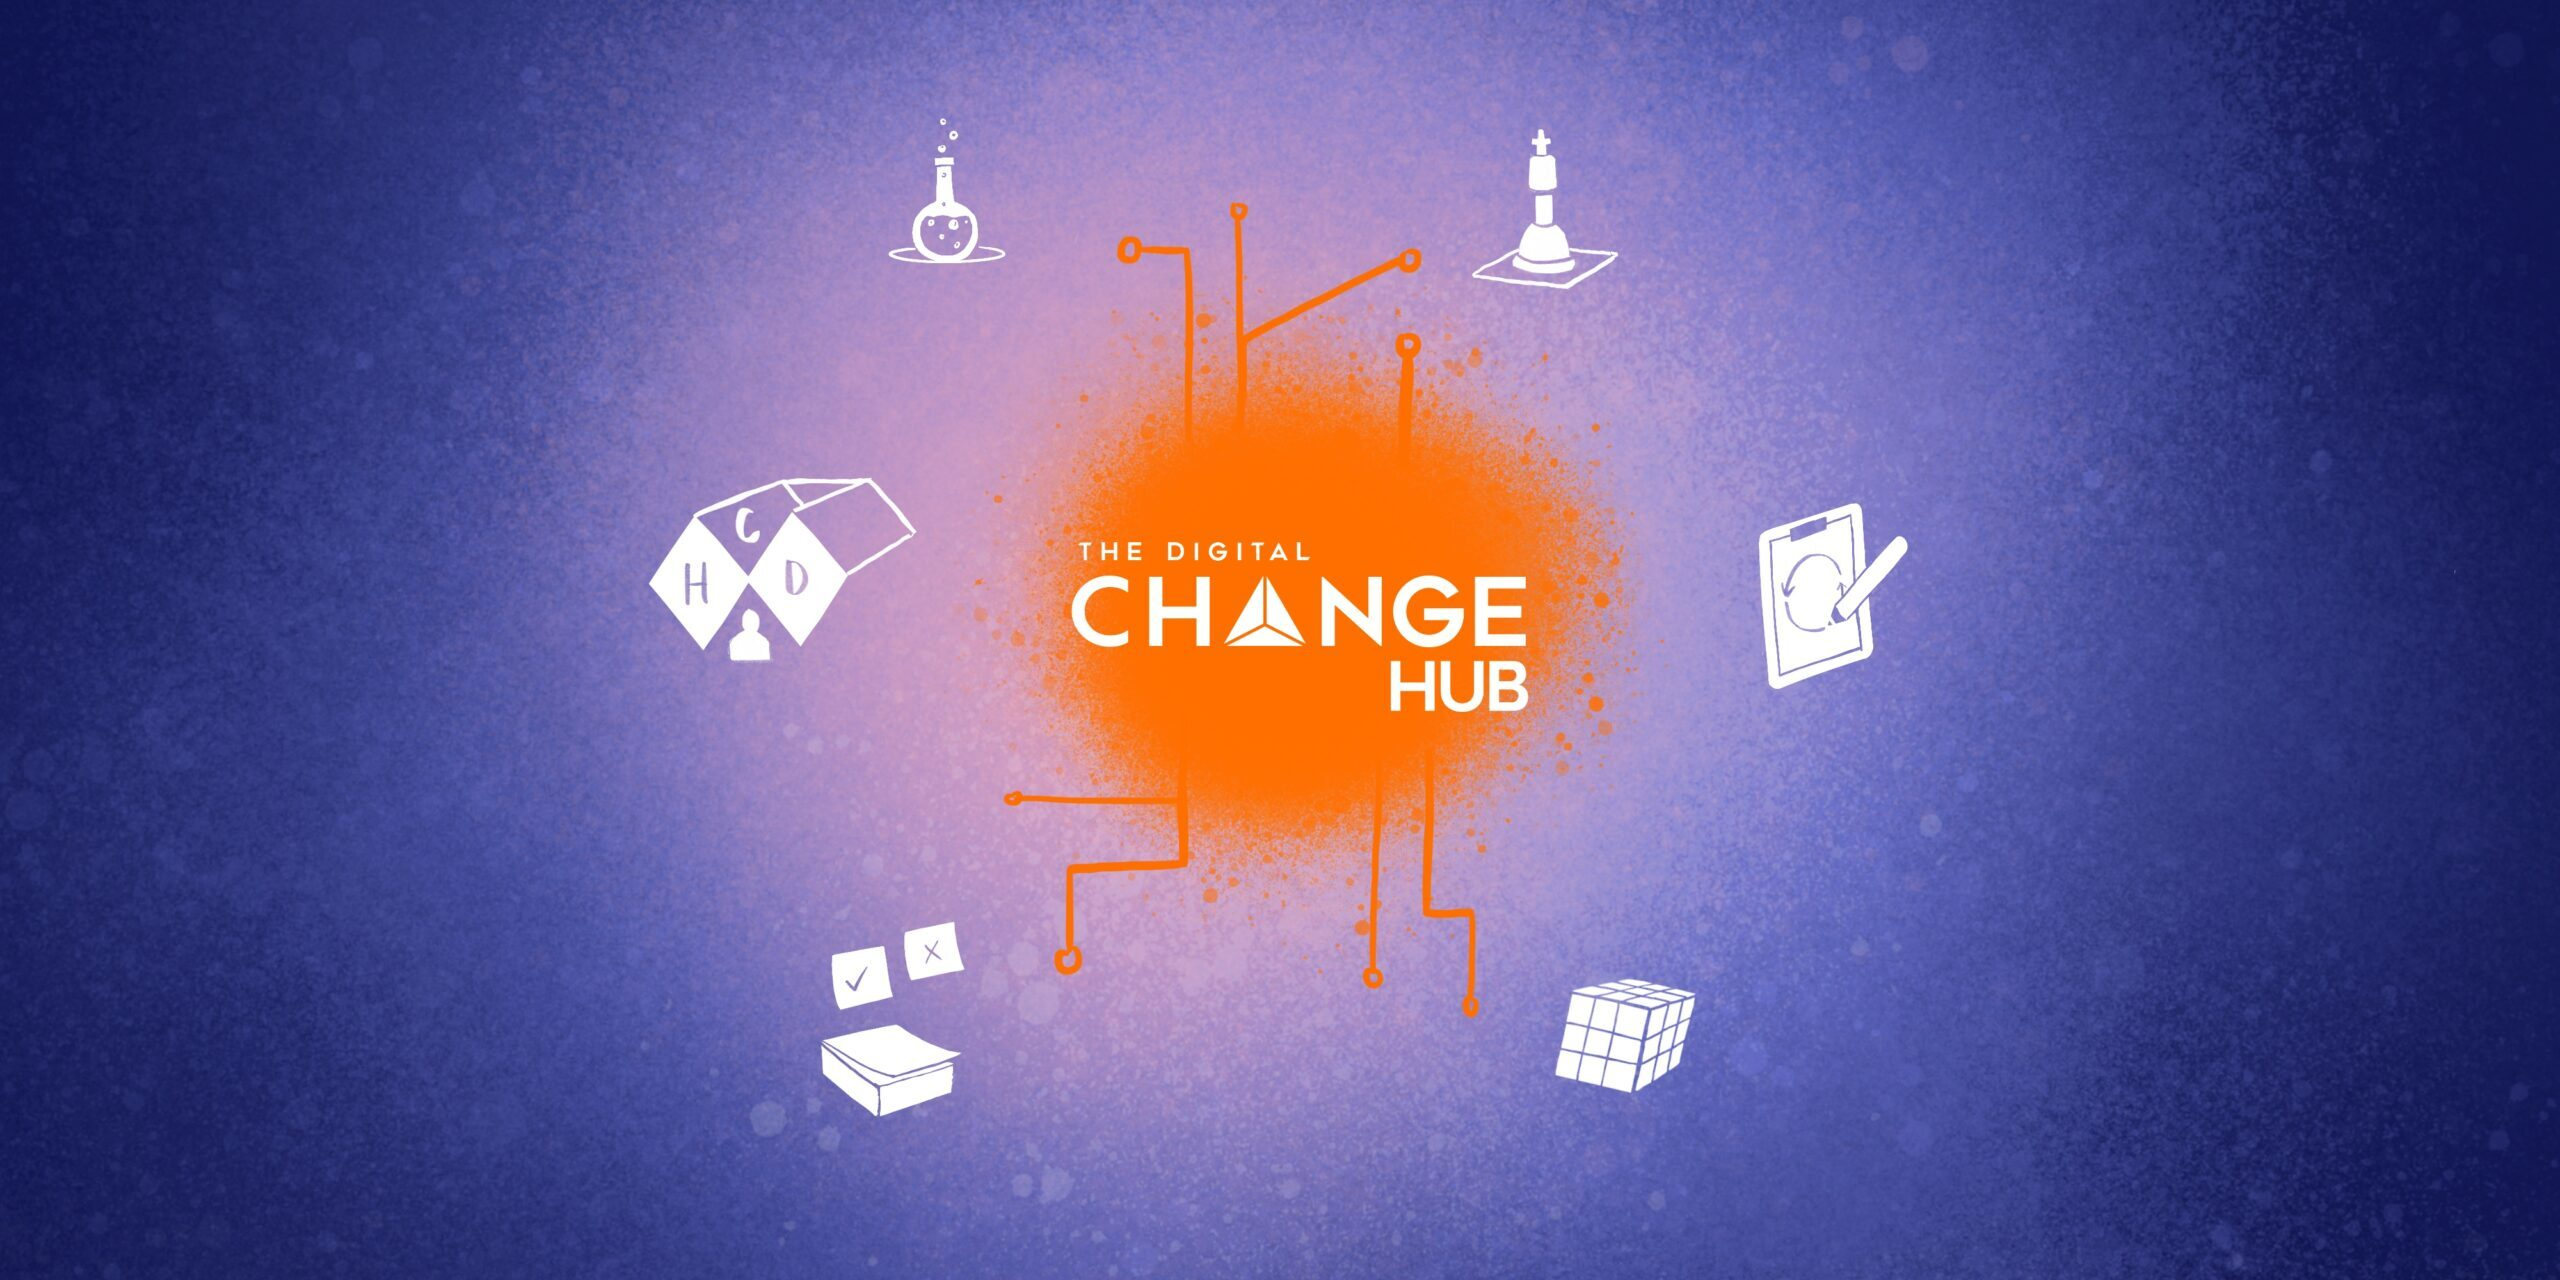 The Digital Change Hub